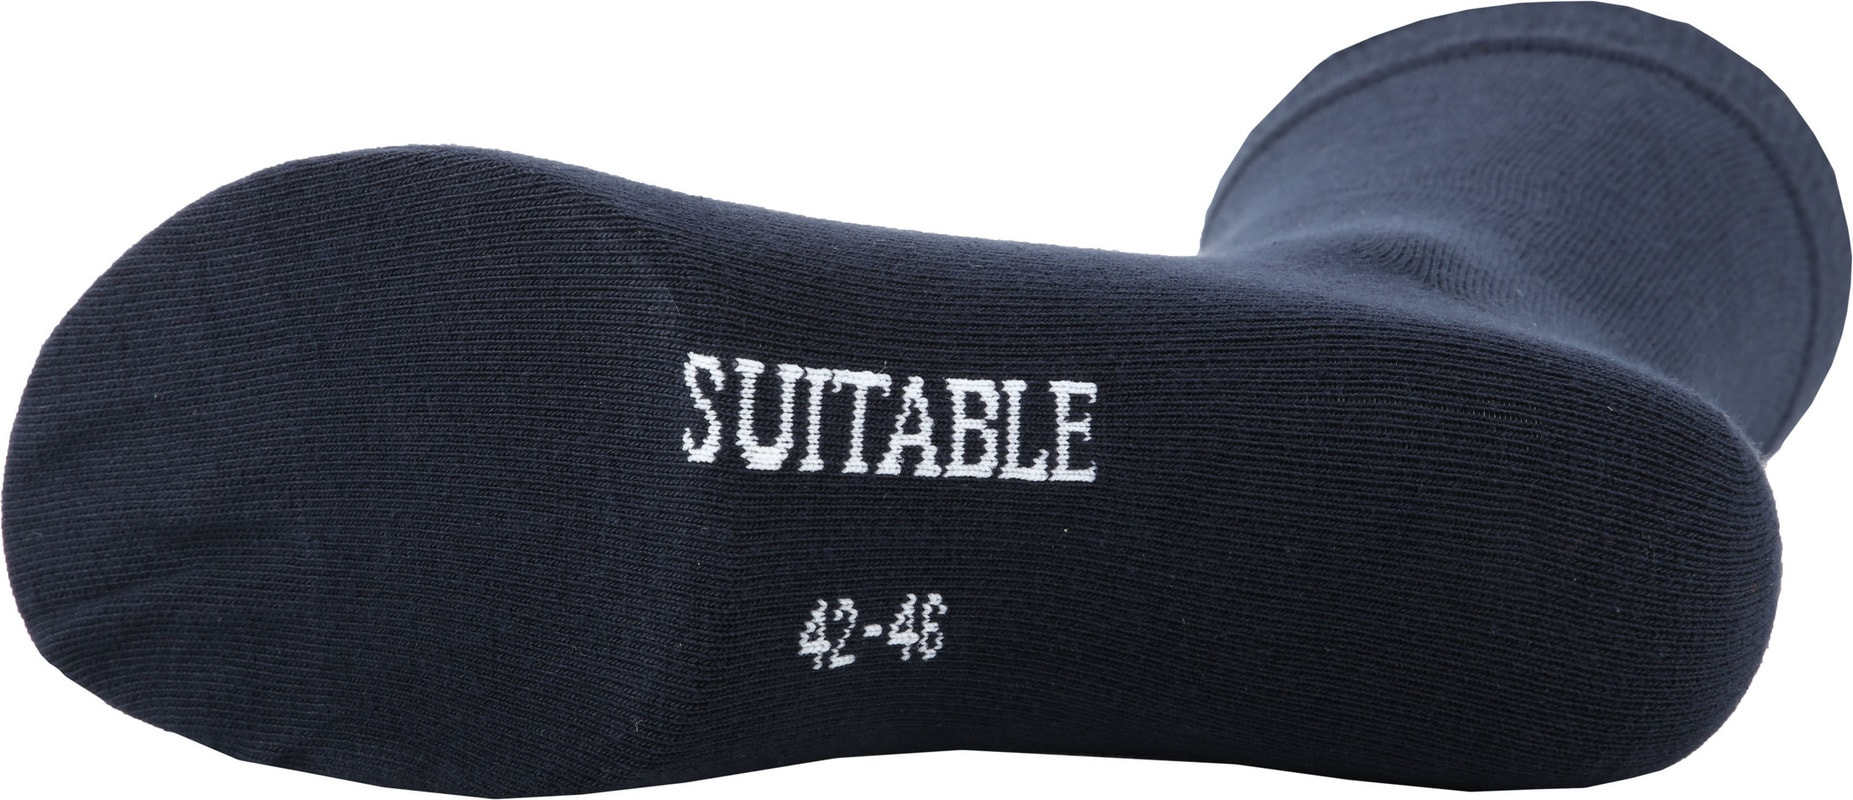 Suitable Bio Cotton Socks Navy 6-Pack photo 2